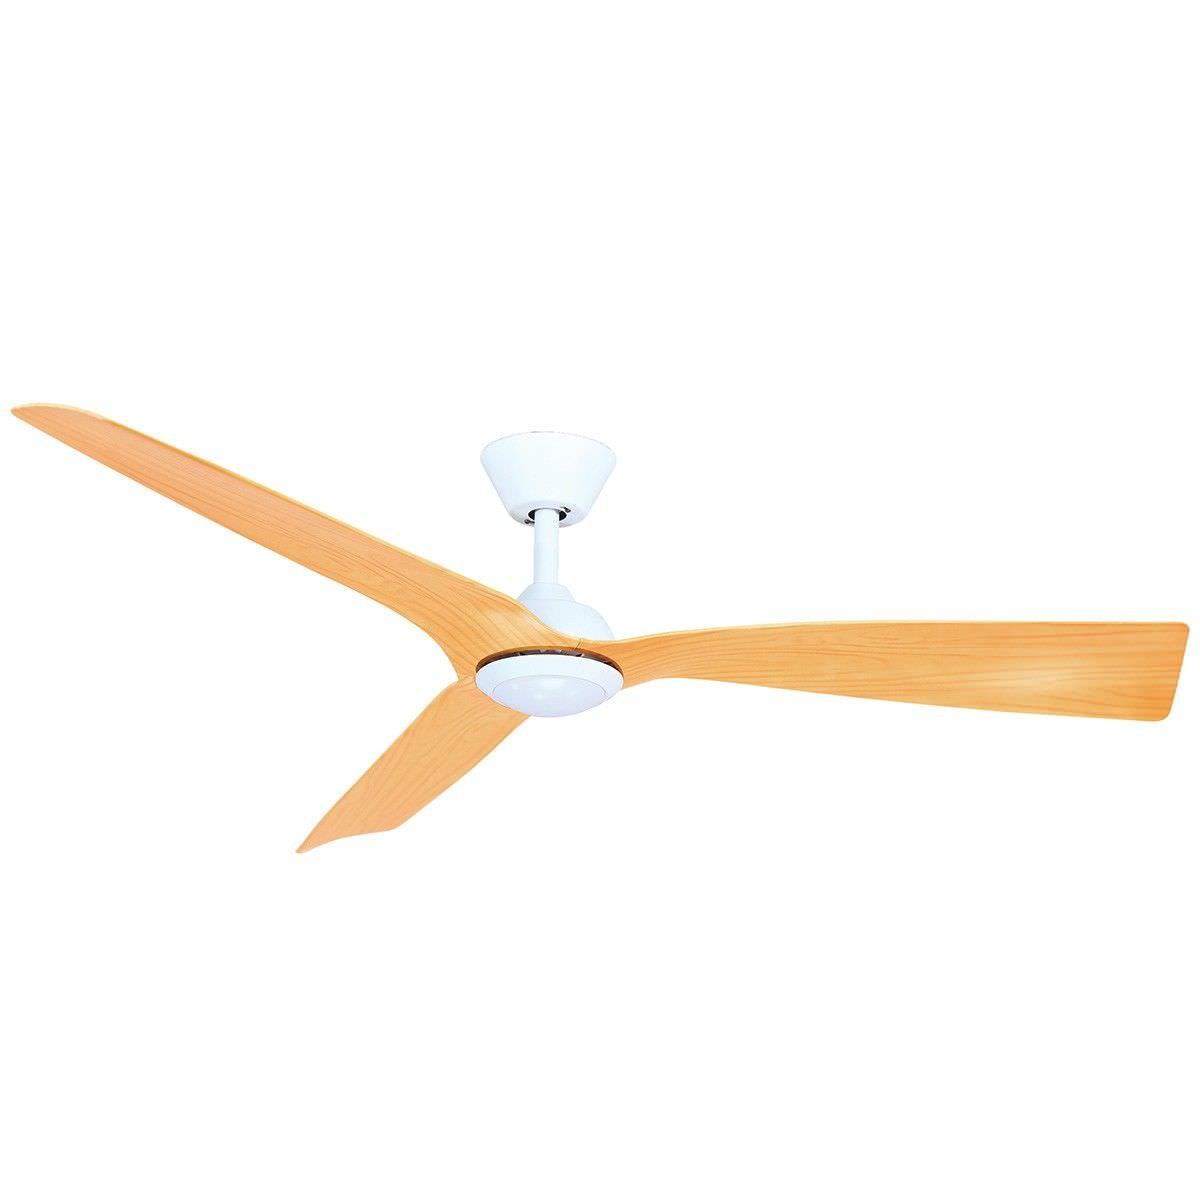 Ceiling fans economic ceiling fans australia wide trinidad ii dc ceiling fan with led light 130cm52 white ashwood mozeypictures Gallery